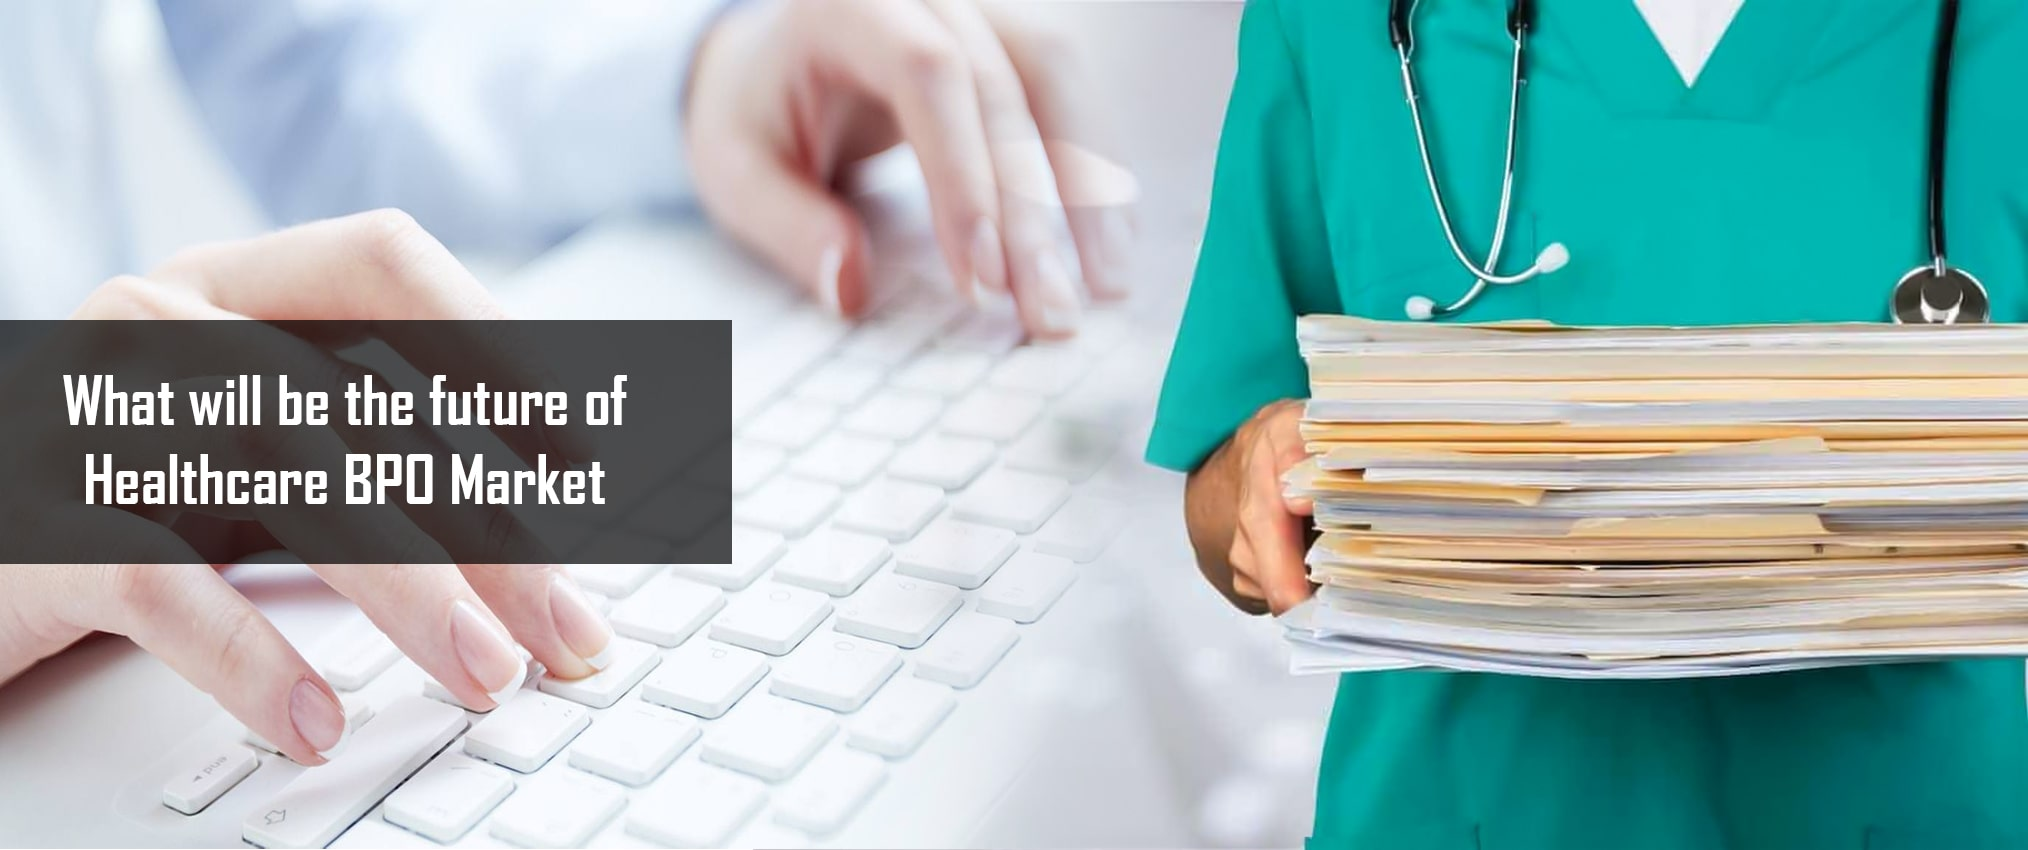 what will be the future of healthcare bpo market